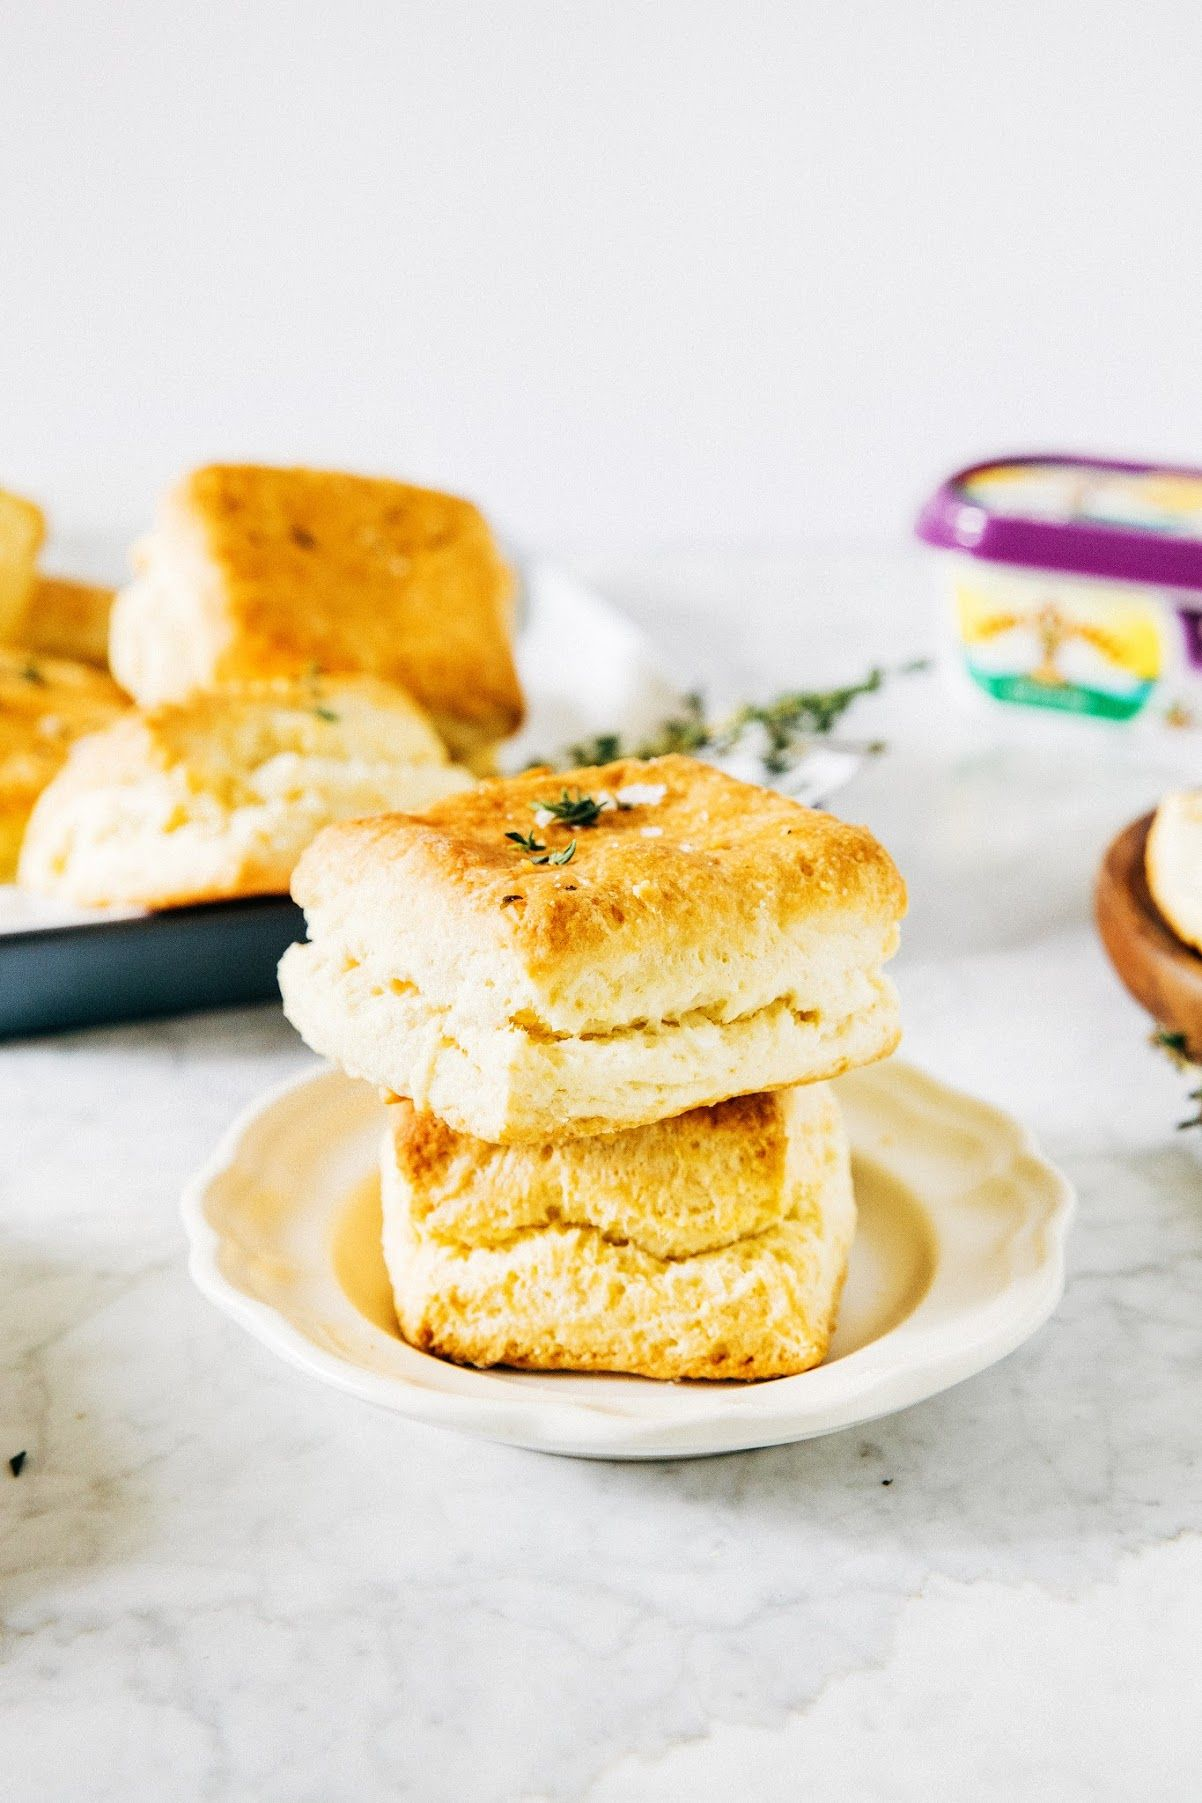 Garlic And Herb Buttermilk Biscuits Or How I Learned To Stop Worrying And Love The Biscuit Hummingbird High Recipe Buttermilk Biscuits Biscuits Biscuit Recipe